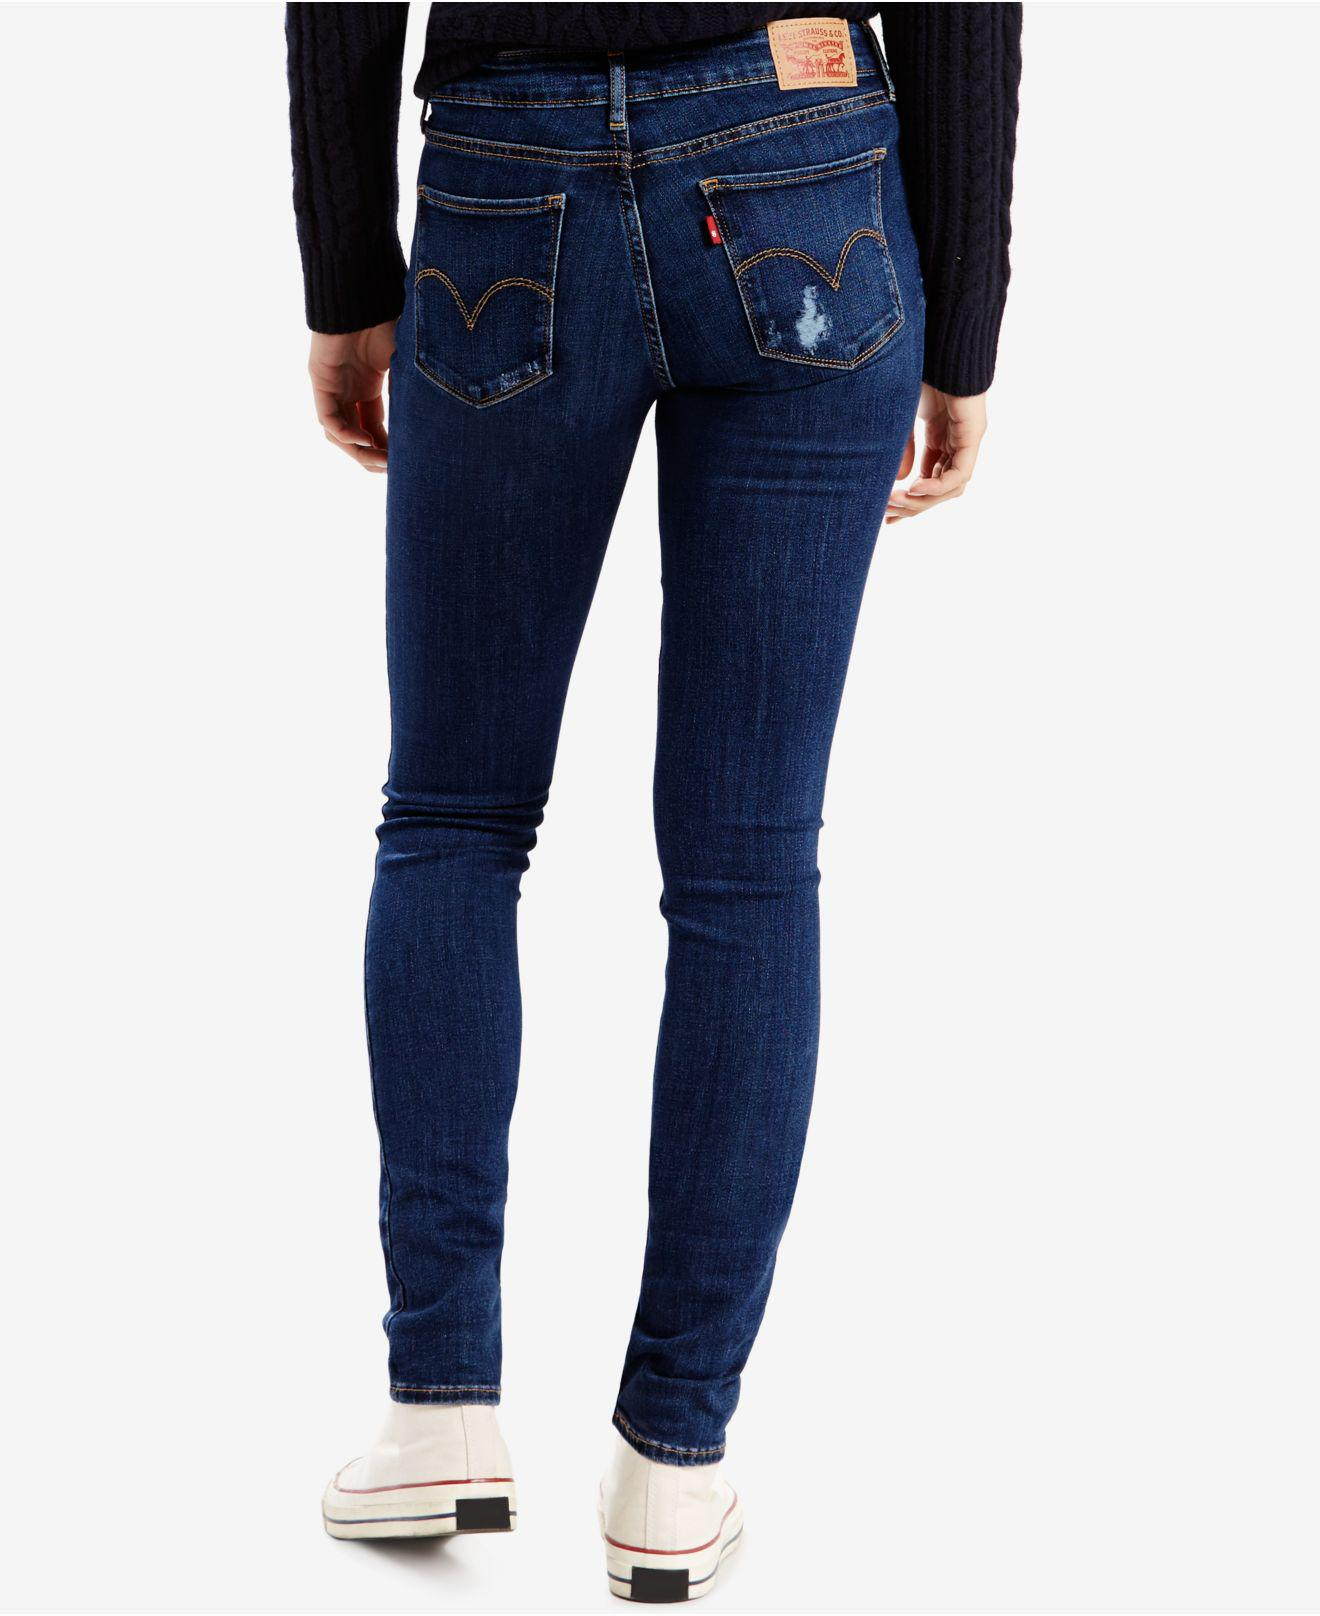 255eb08b62f Lyst - Levi s ® 711 Ripped Skinny Jeans in Blue - Save 17%